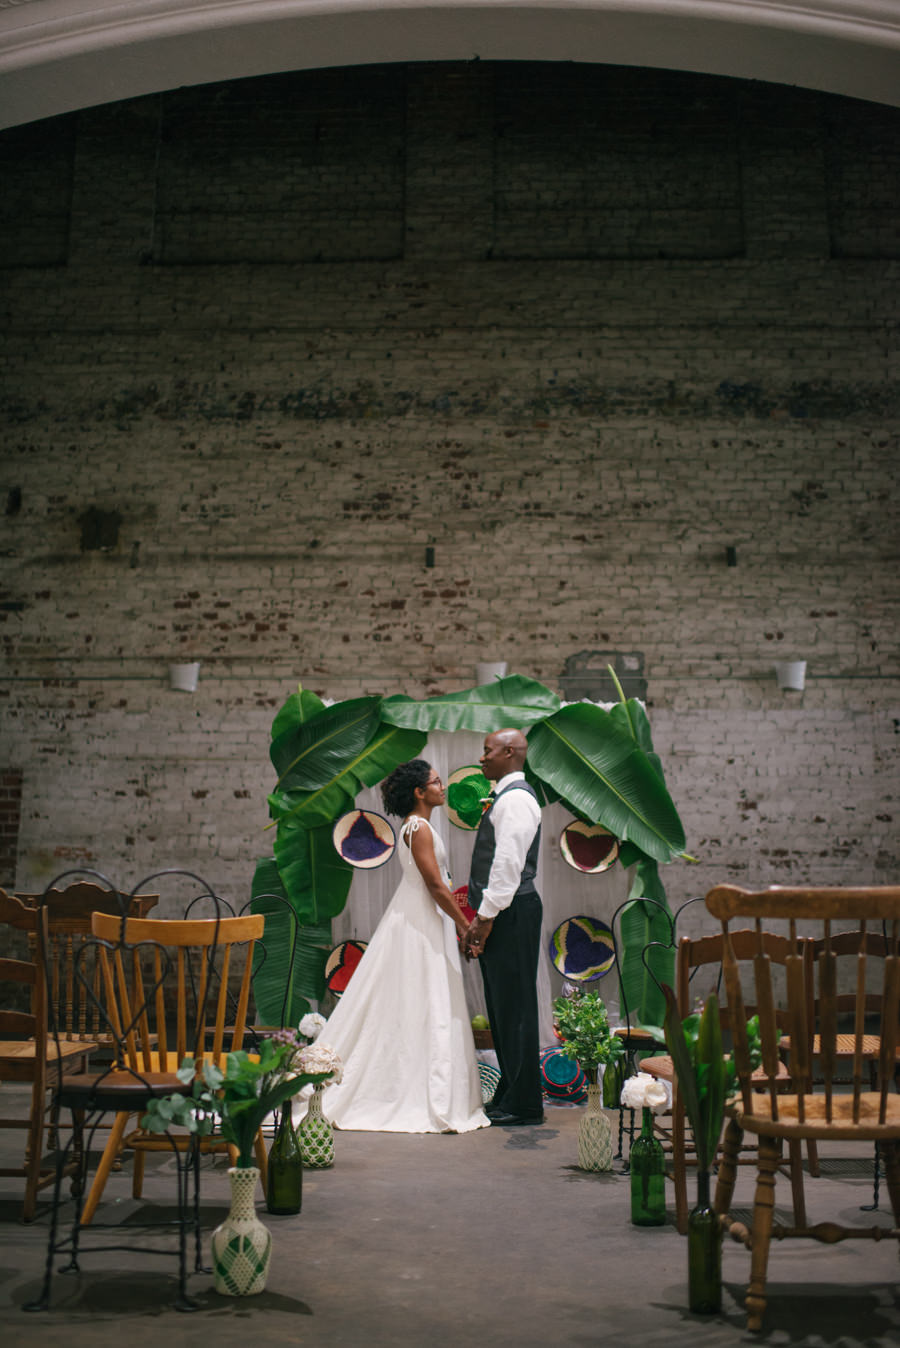 Eco-Friendly Wedding Arch of Palm Leaves with Wedding Tropical, Carribean Ceremony Vases with Crochet Detail and Greenery with Wooden Chairs